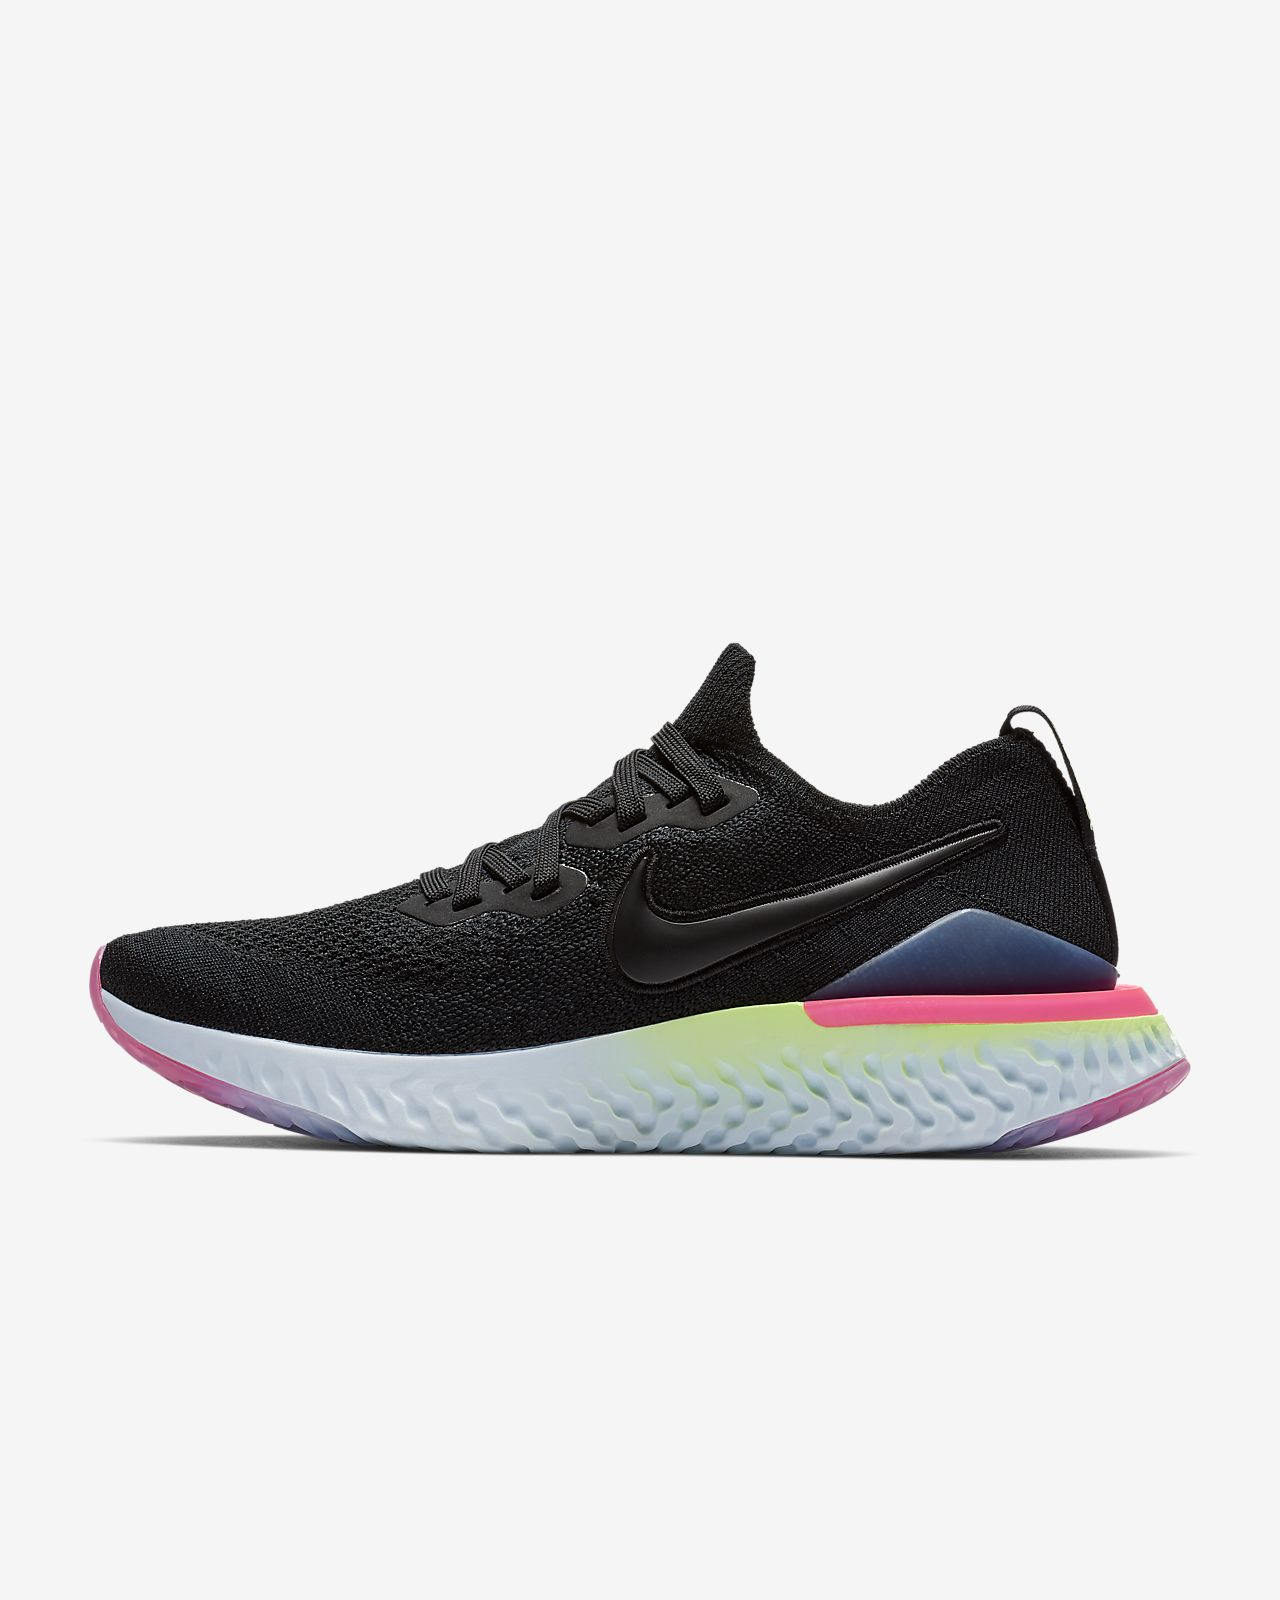 627b70c1c76 Nike Epic React Flyknit 2 Women s Running Shoe. Nike.com